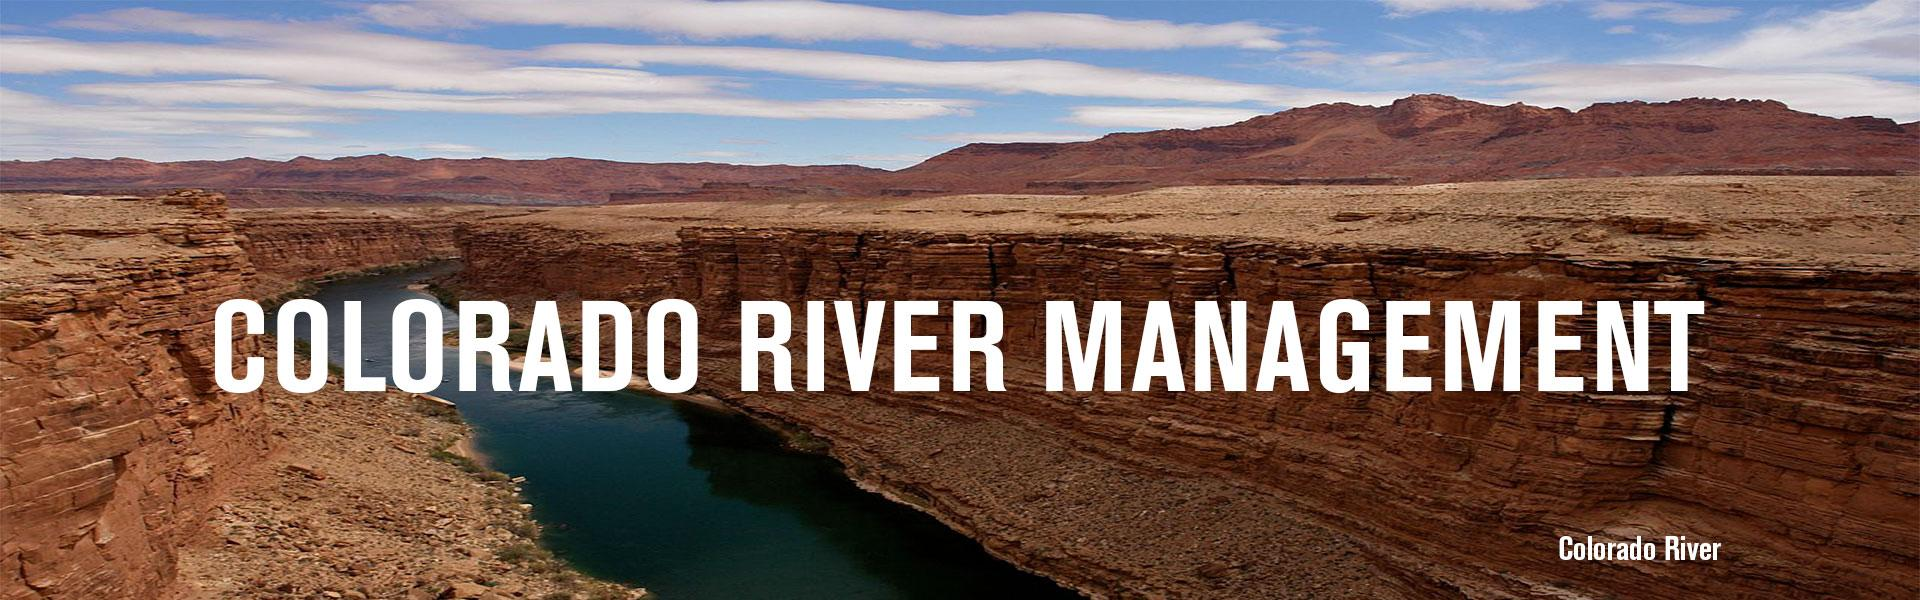 colorado river management arizona department of water resources